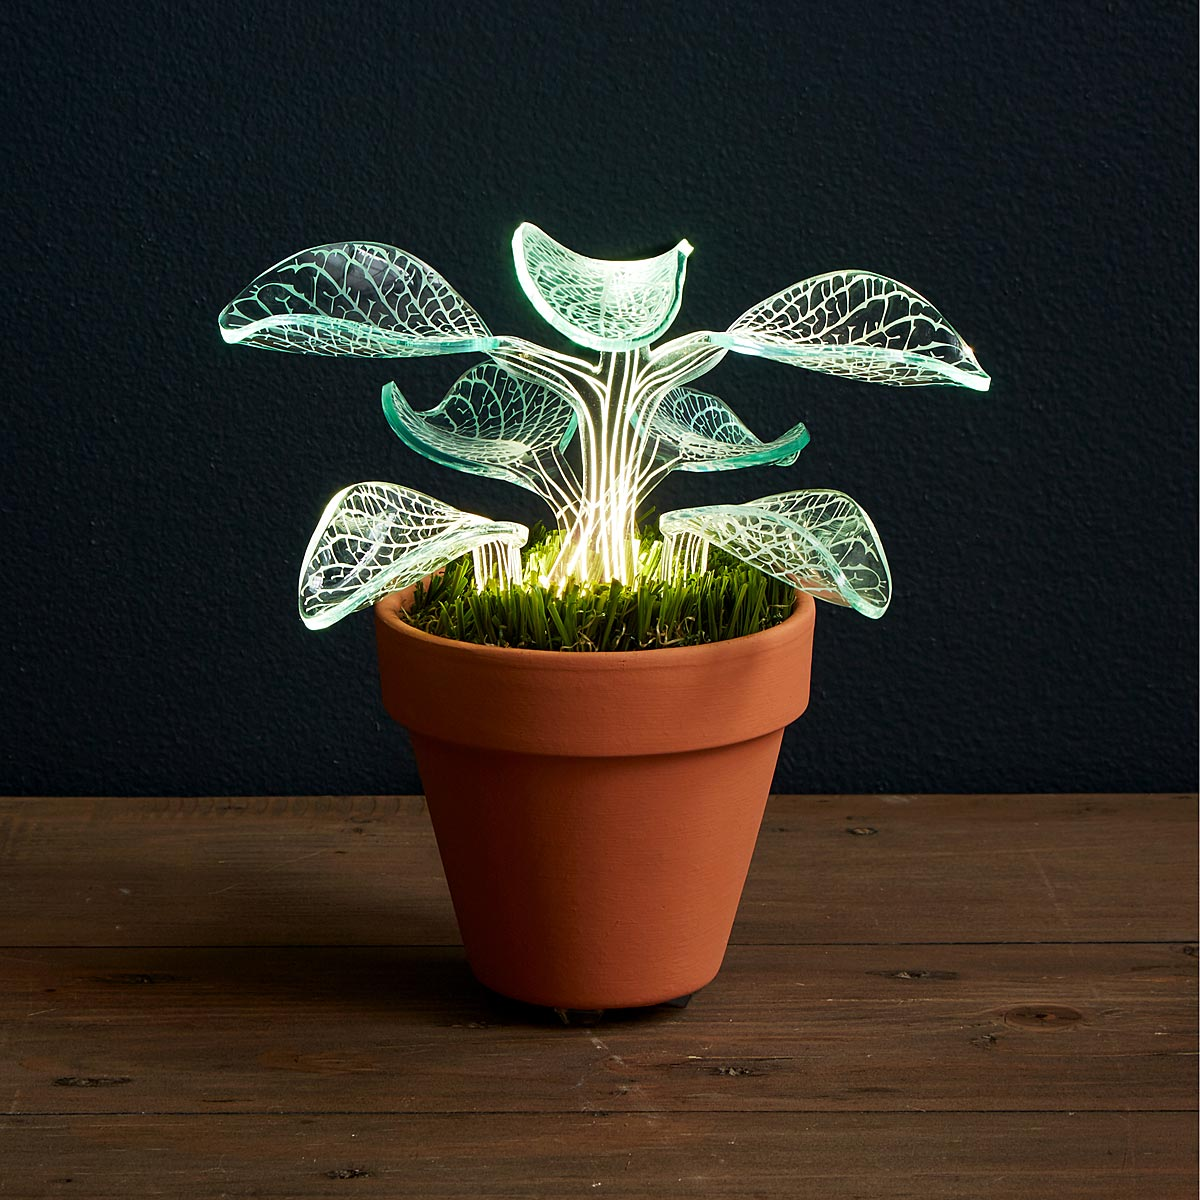 Lamp Plant Let It Glow Lamp Bedside Lamps Indoor Plants Uncommongoods